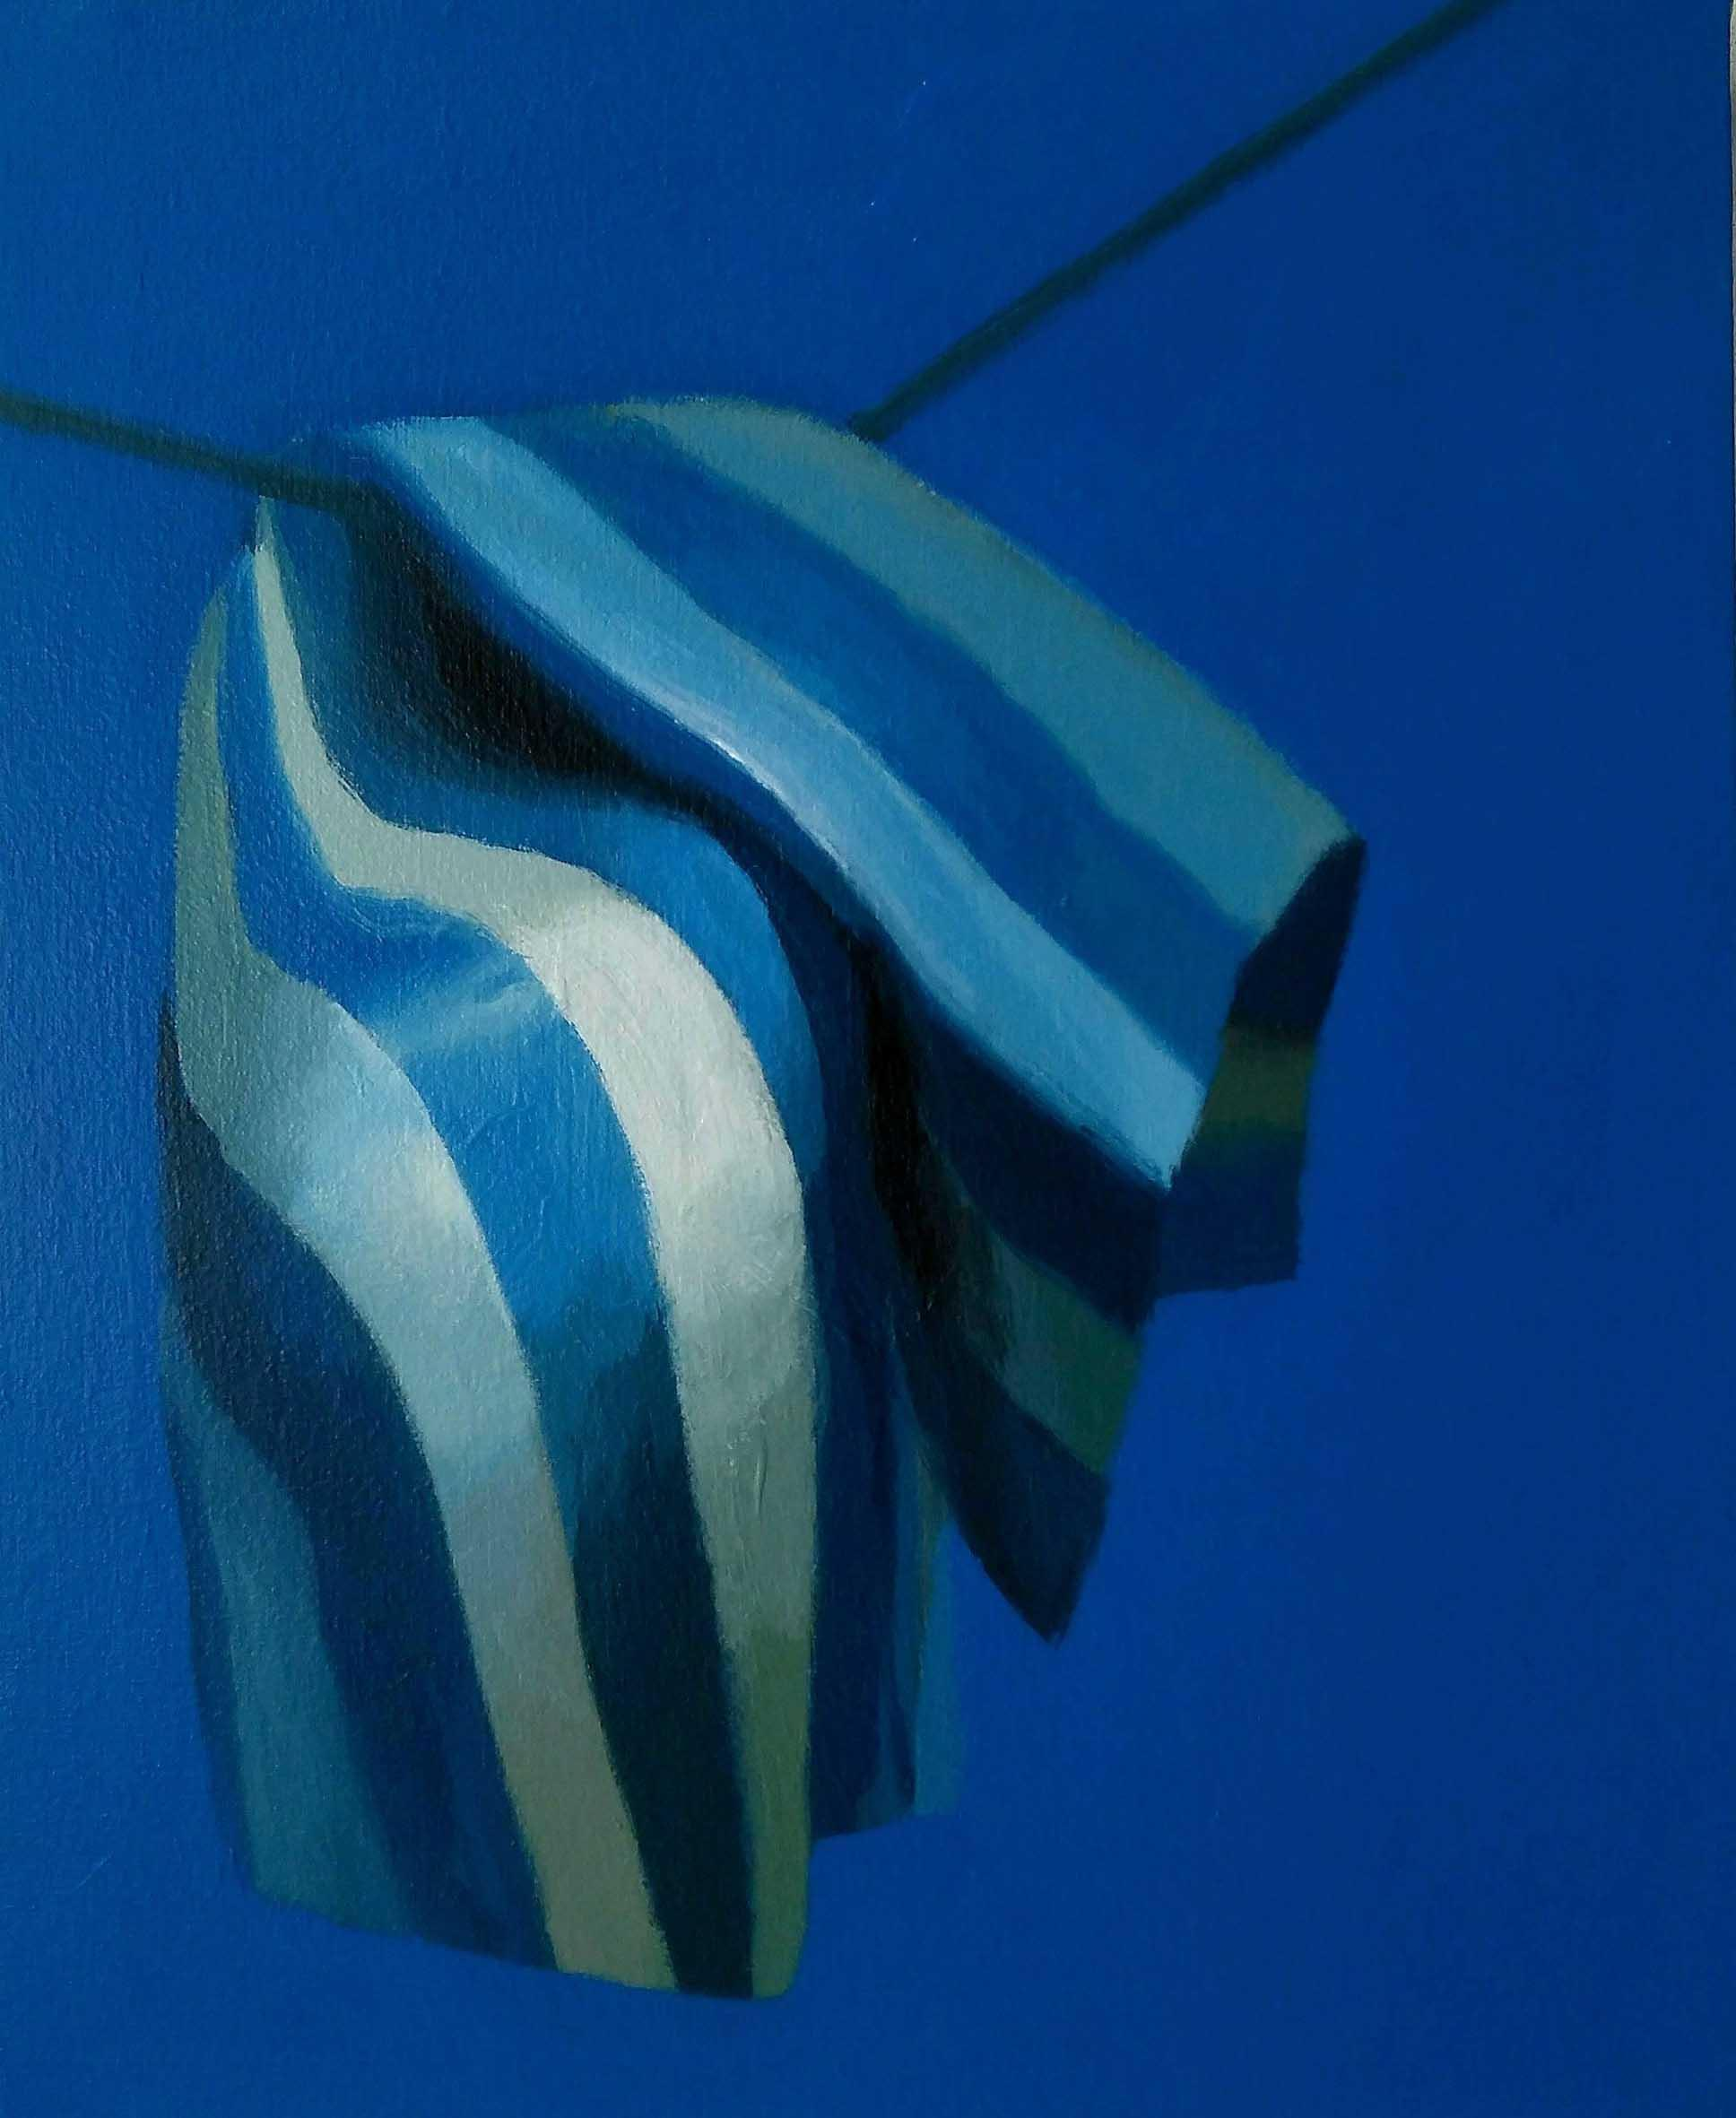 11 PATHETIC FLAG 61 x 50cm Pigmento y latex sobre loneta 2017